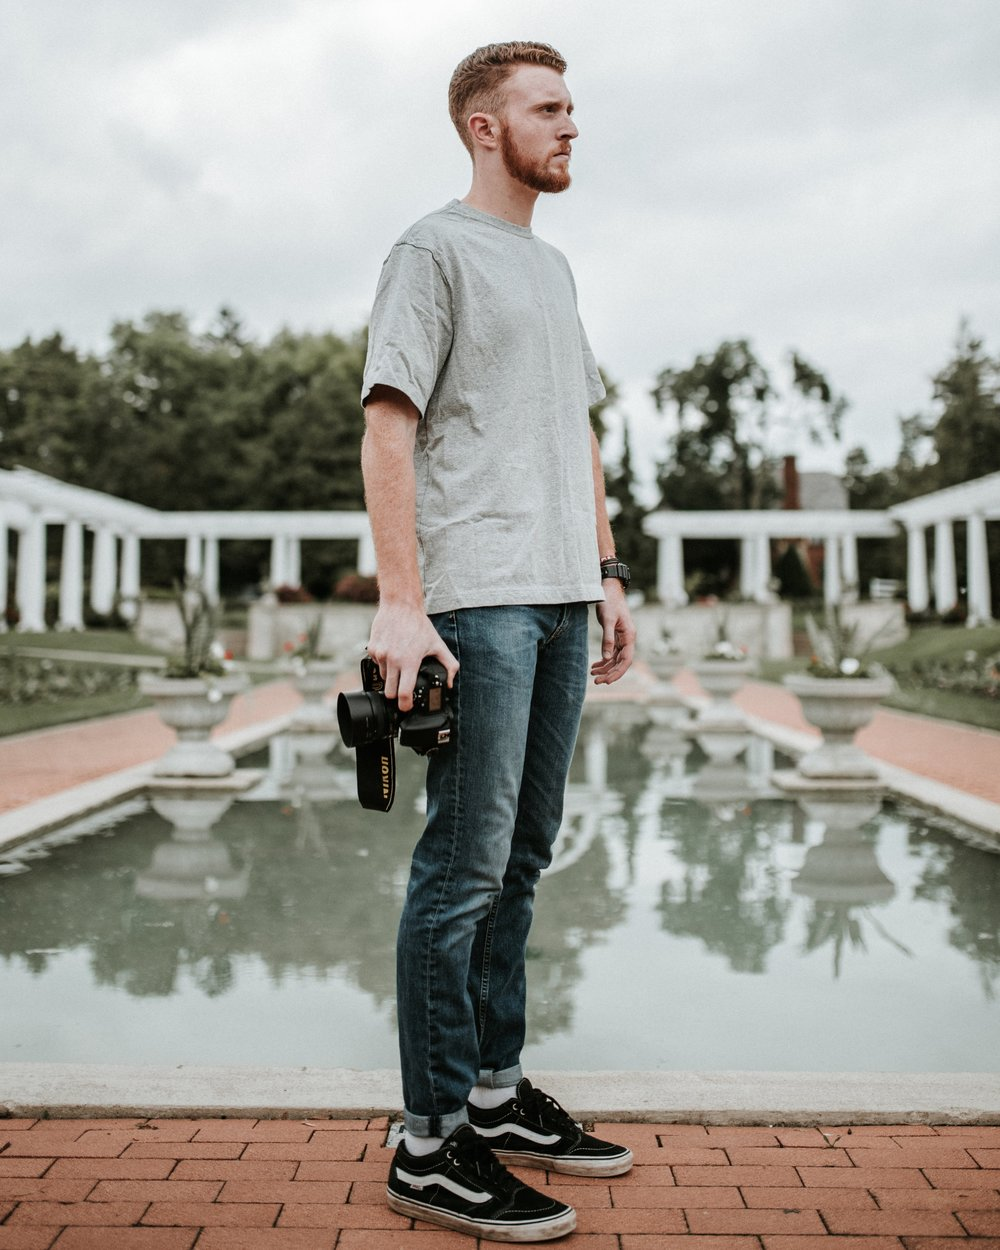 Tyler Ross - Photographer | Videographer21 yrs old from Akron Indiana.My GearAbout